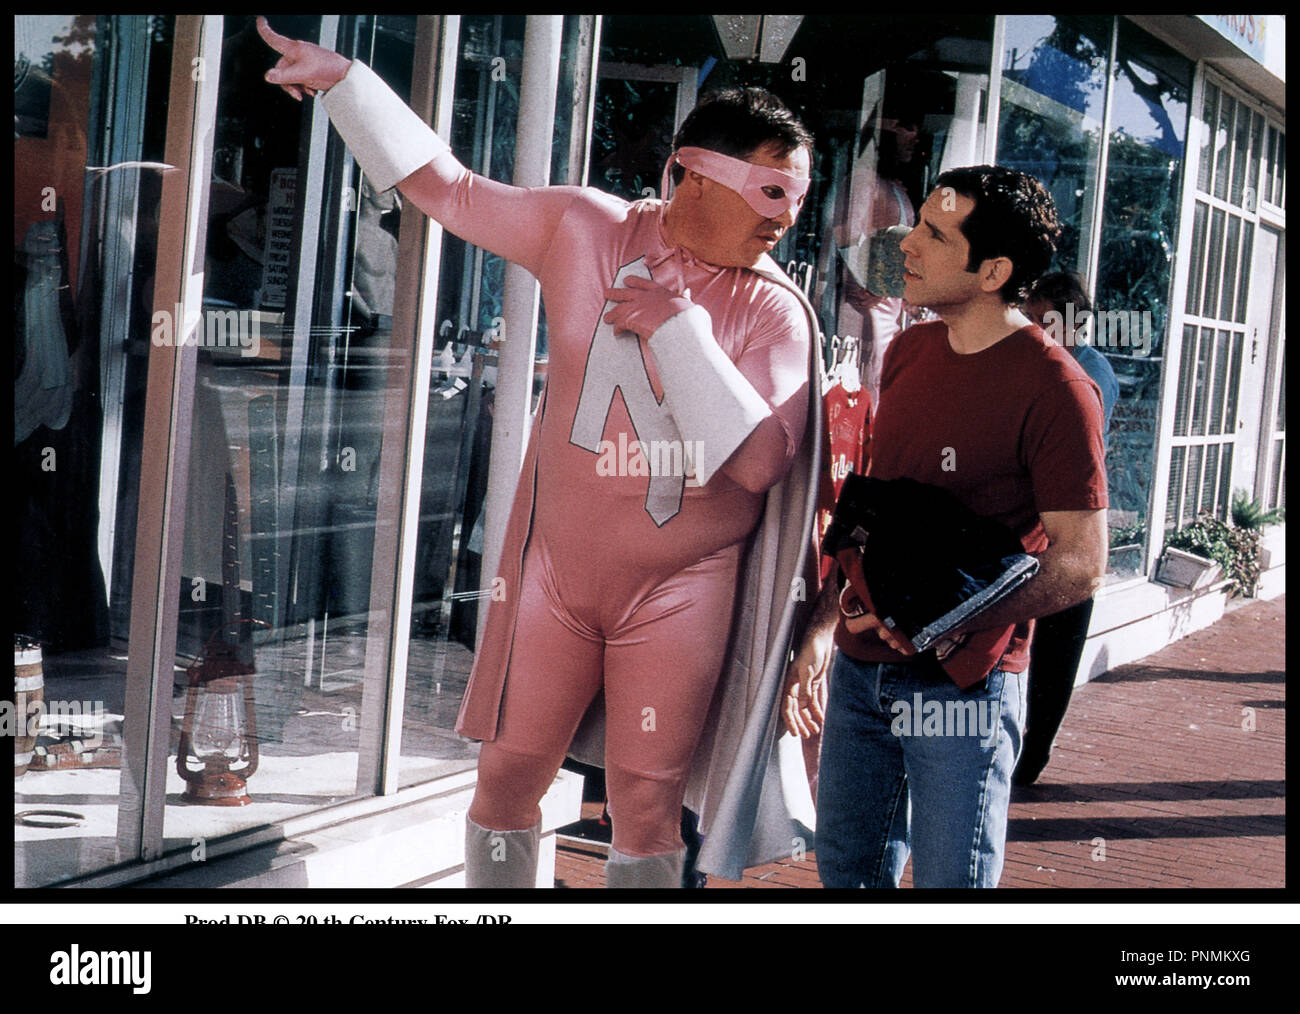 Prod DB © 20 th Century Fox /DR MARY A TOUT PRIX (THERE'S SOMETHING ABOUT MARY) de Bobby et Peter Farrelly 1998 USA avec W. Earl Brown et Ben Stiller tenue de super hŽros rose, ridicule - Stock Image